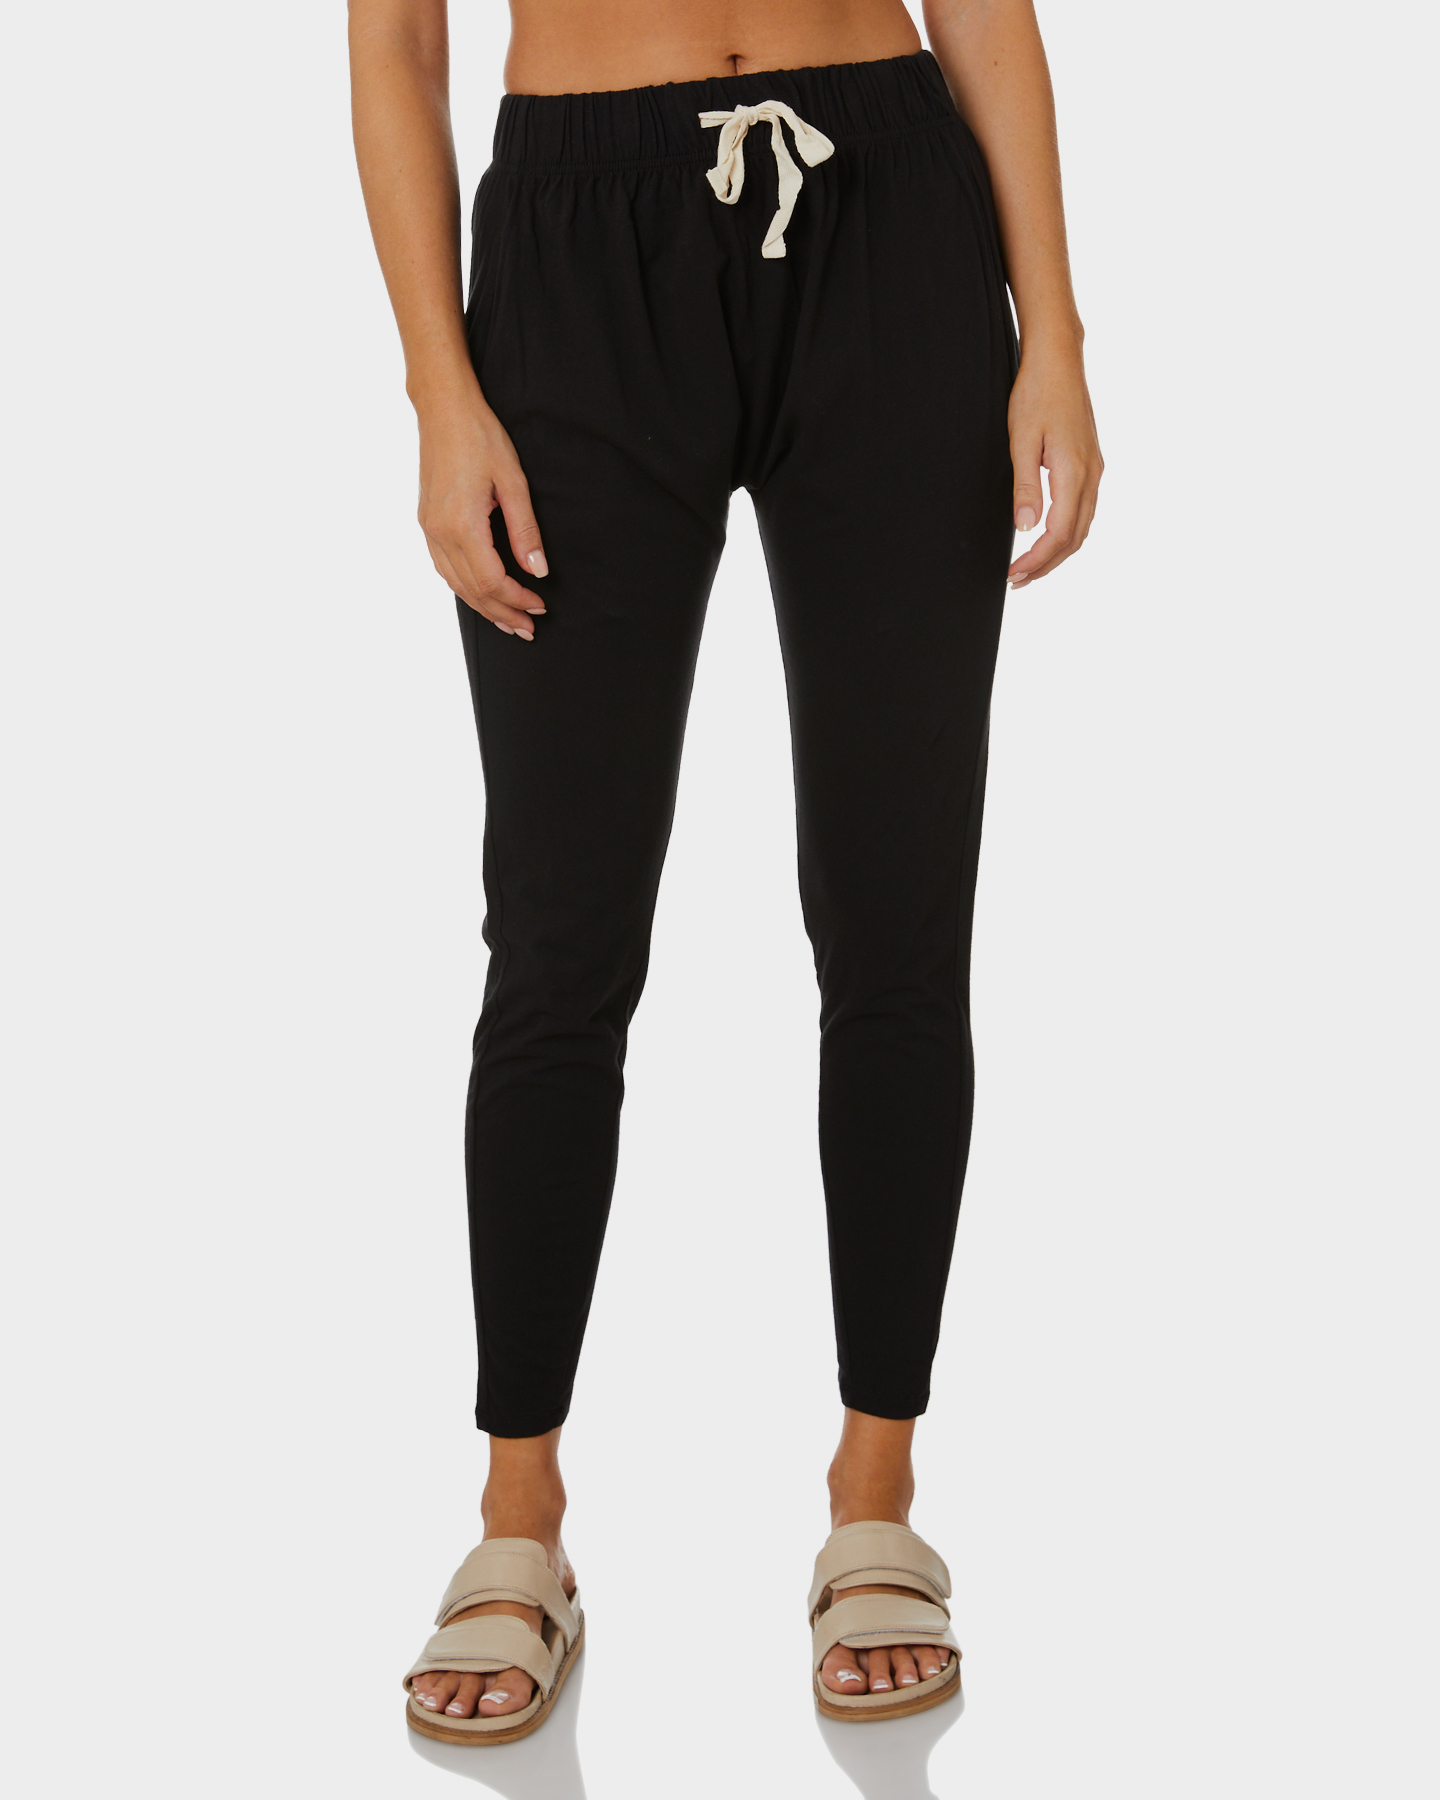 Silent Theory Fluid Womens Pant Black